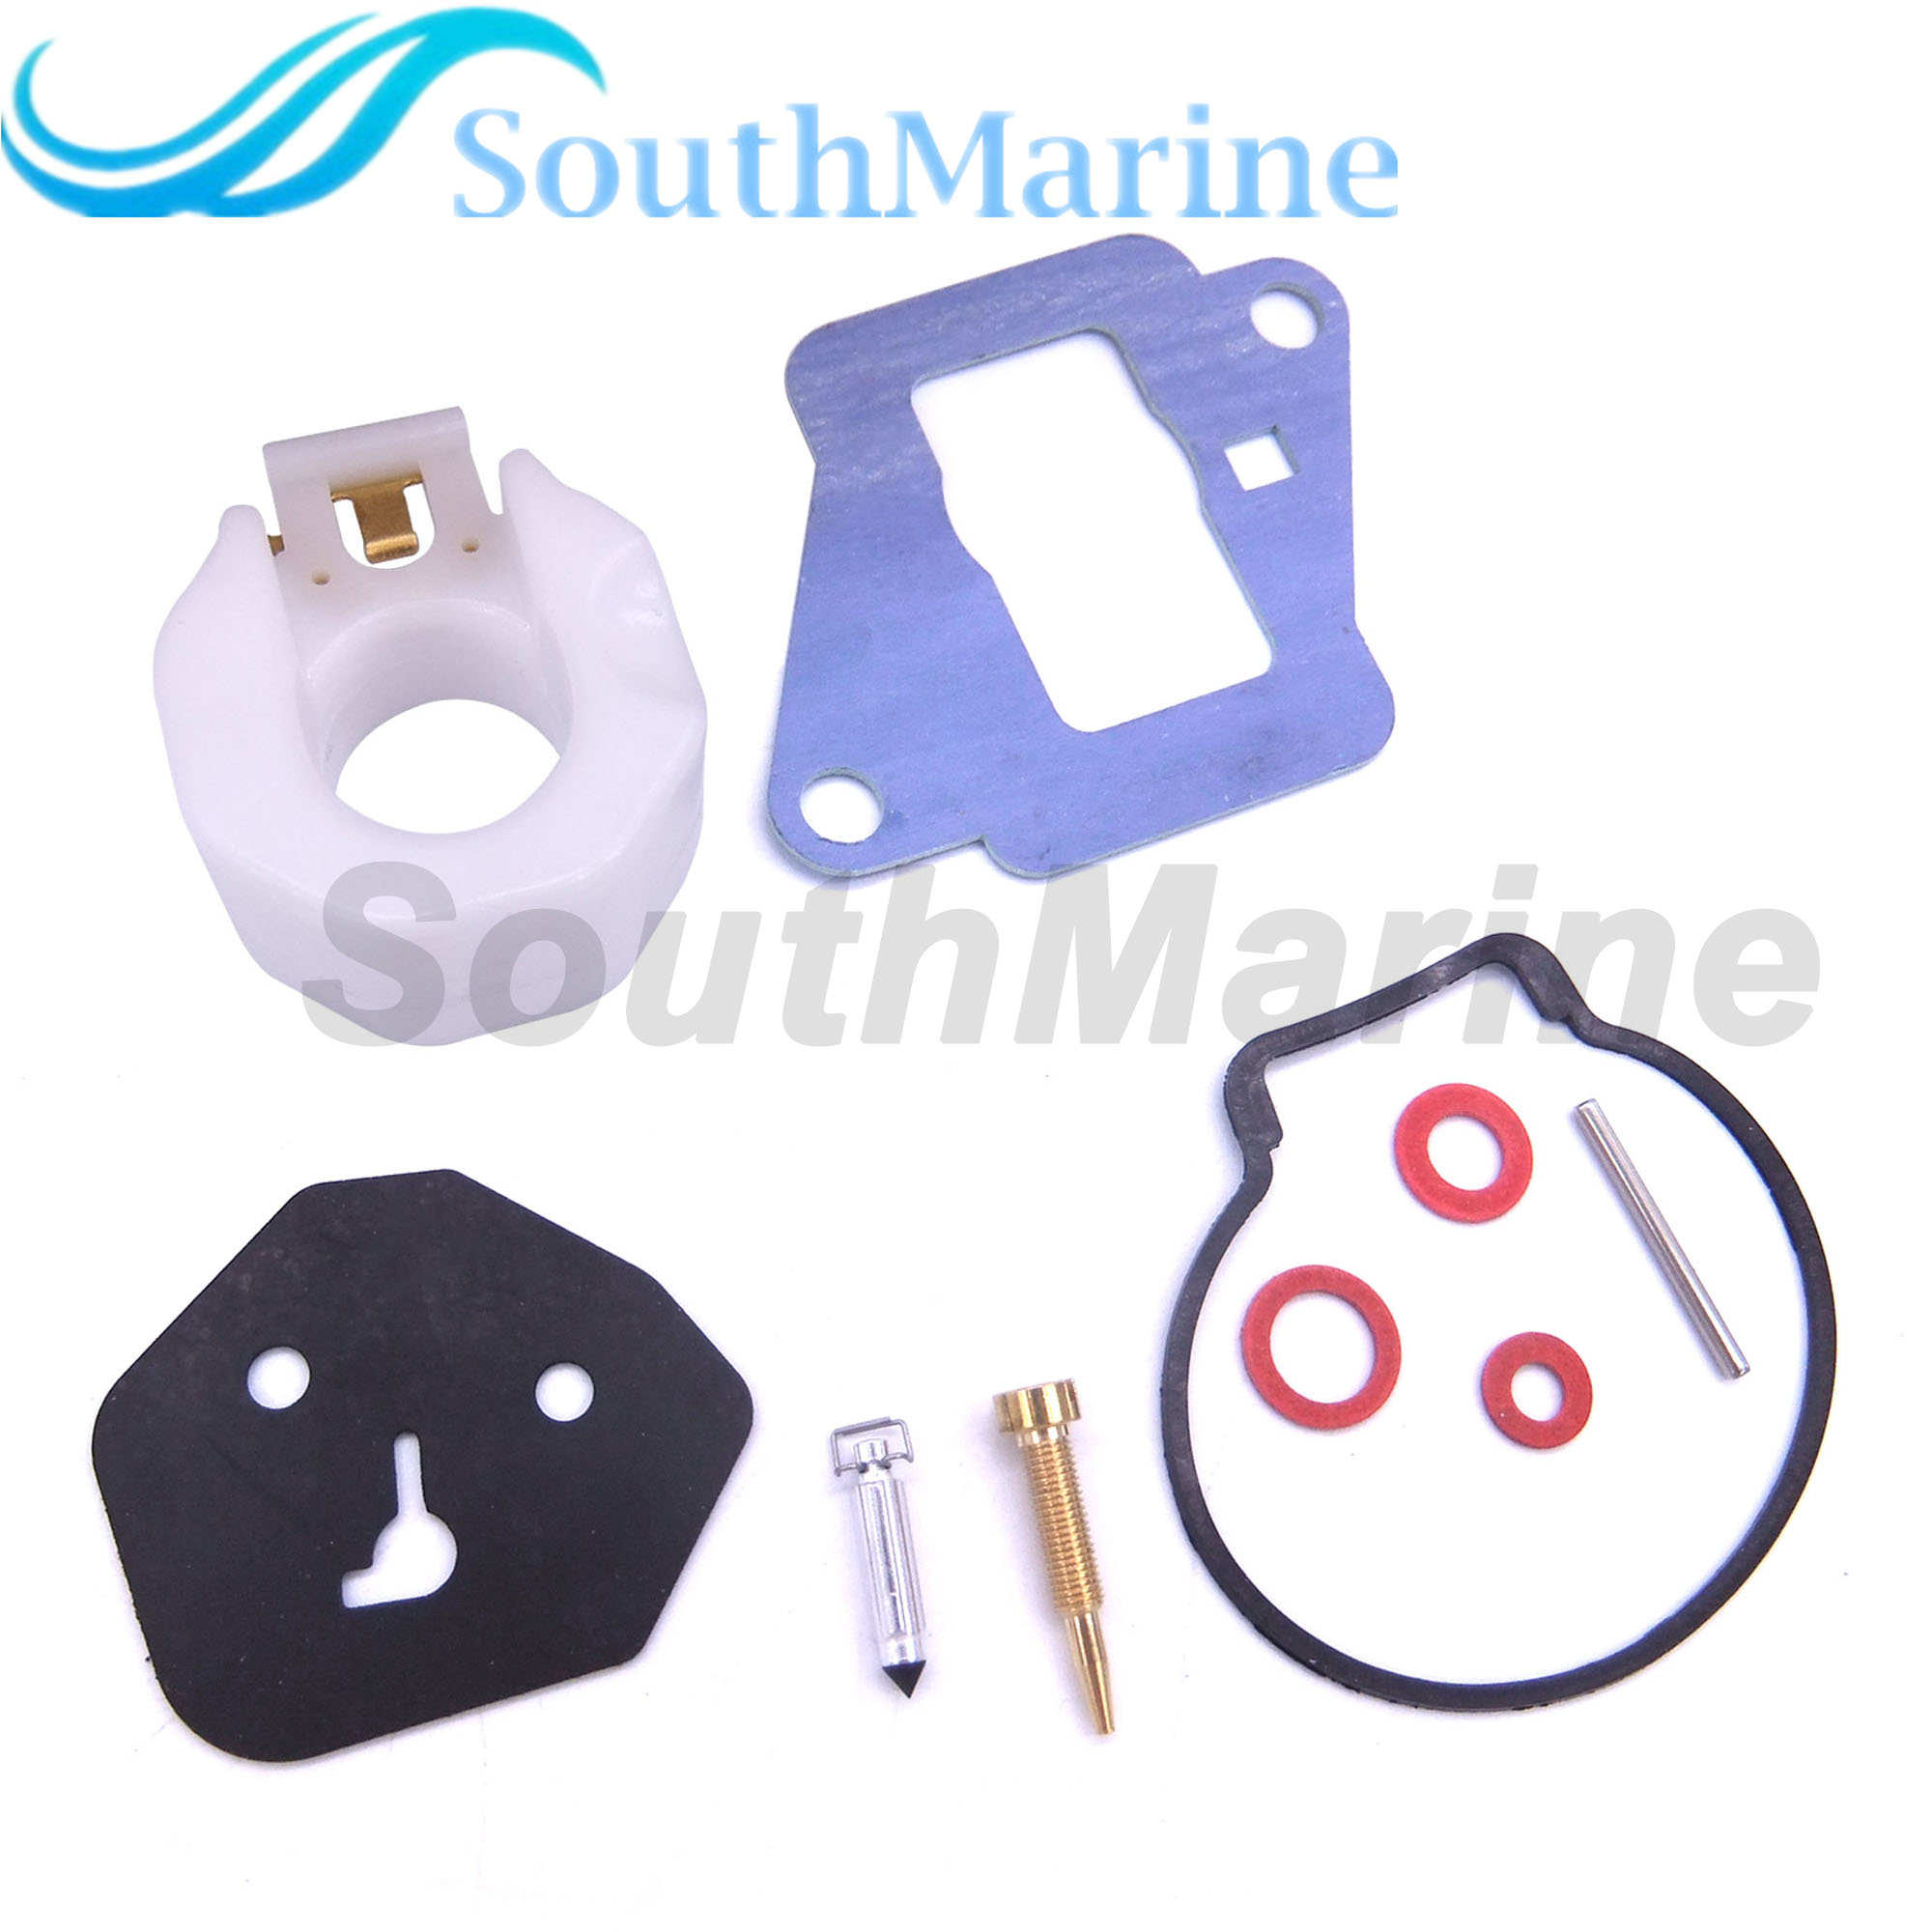 61N-81313-09 Lighting Coil for Yamaha Outboard C 25HP 30HP 2-stroke Boats Engine